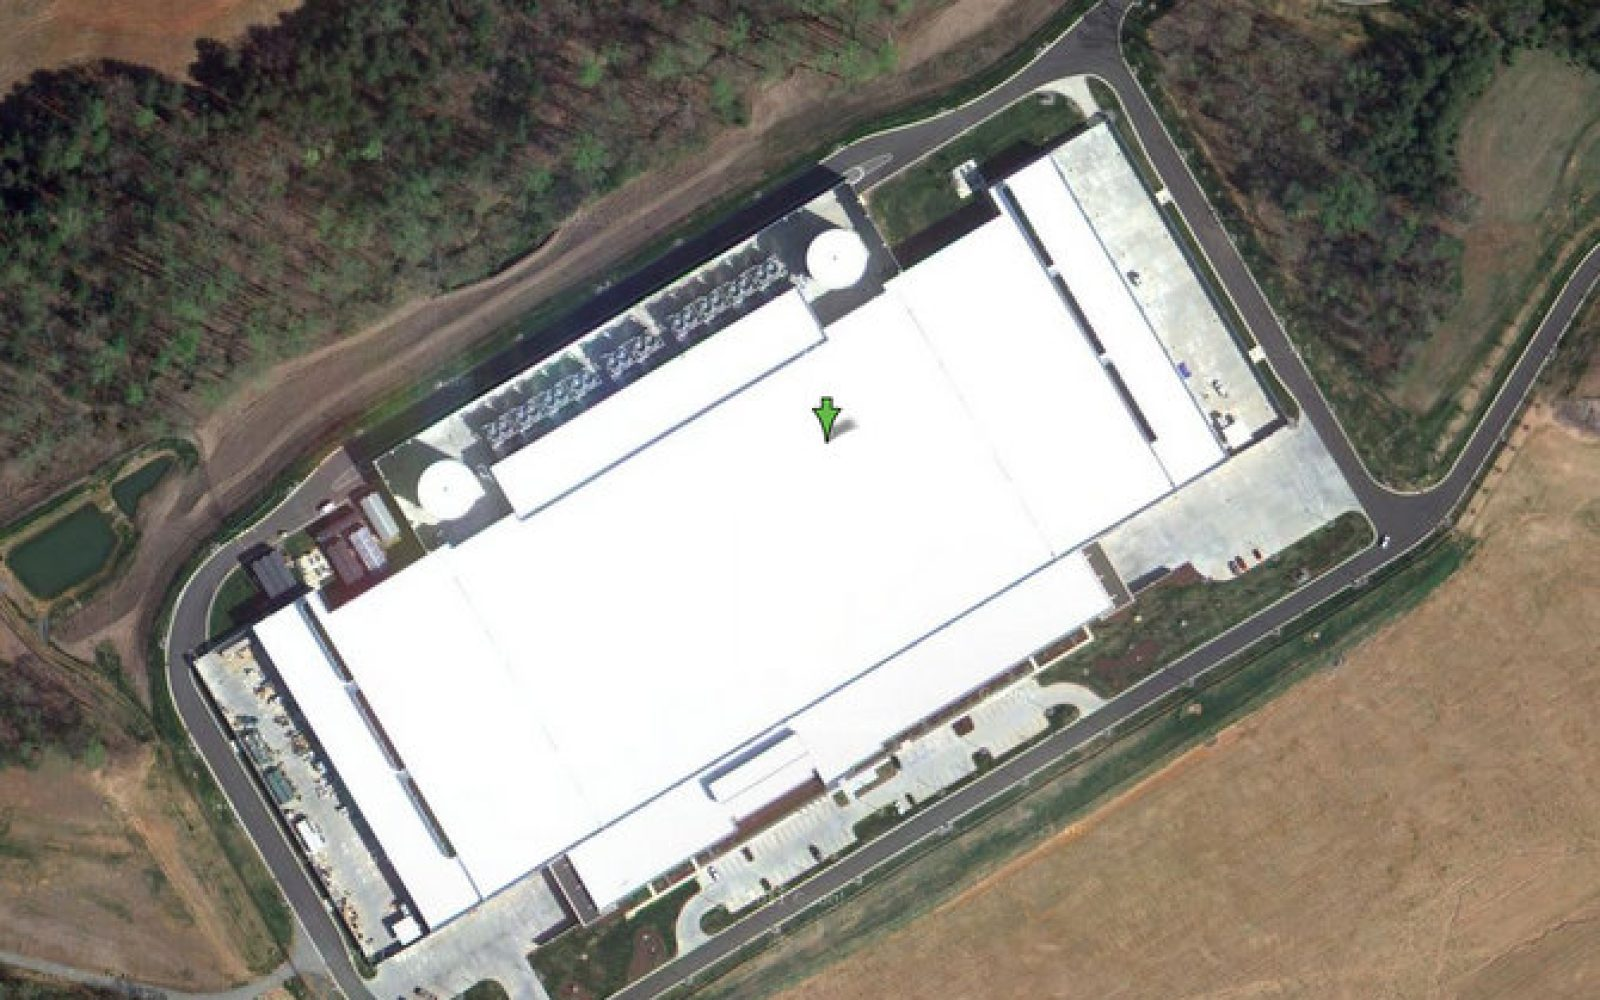 Apple's $1 billion super datacenter goes live in Google ... on google internet map, selmer tn map, google maps space view, google servers, top data center locations map, google 3d street view, google weather map, google facility tour, google government map, google cloud map, google restaurants map, sao paulo google map, google wireless map, google global map, google map of albuquerque nm, google commercial map, microsoft data center locations map, google china map in chinese, google office map, office 365 data center map,